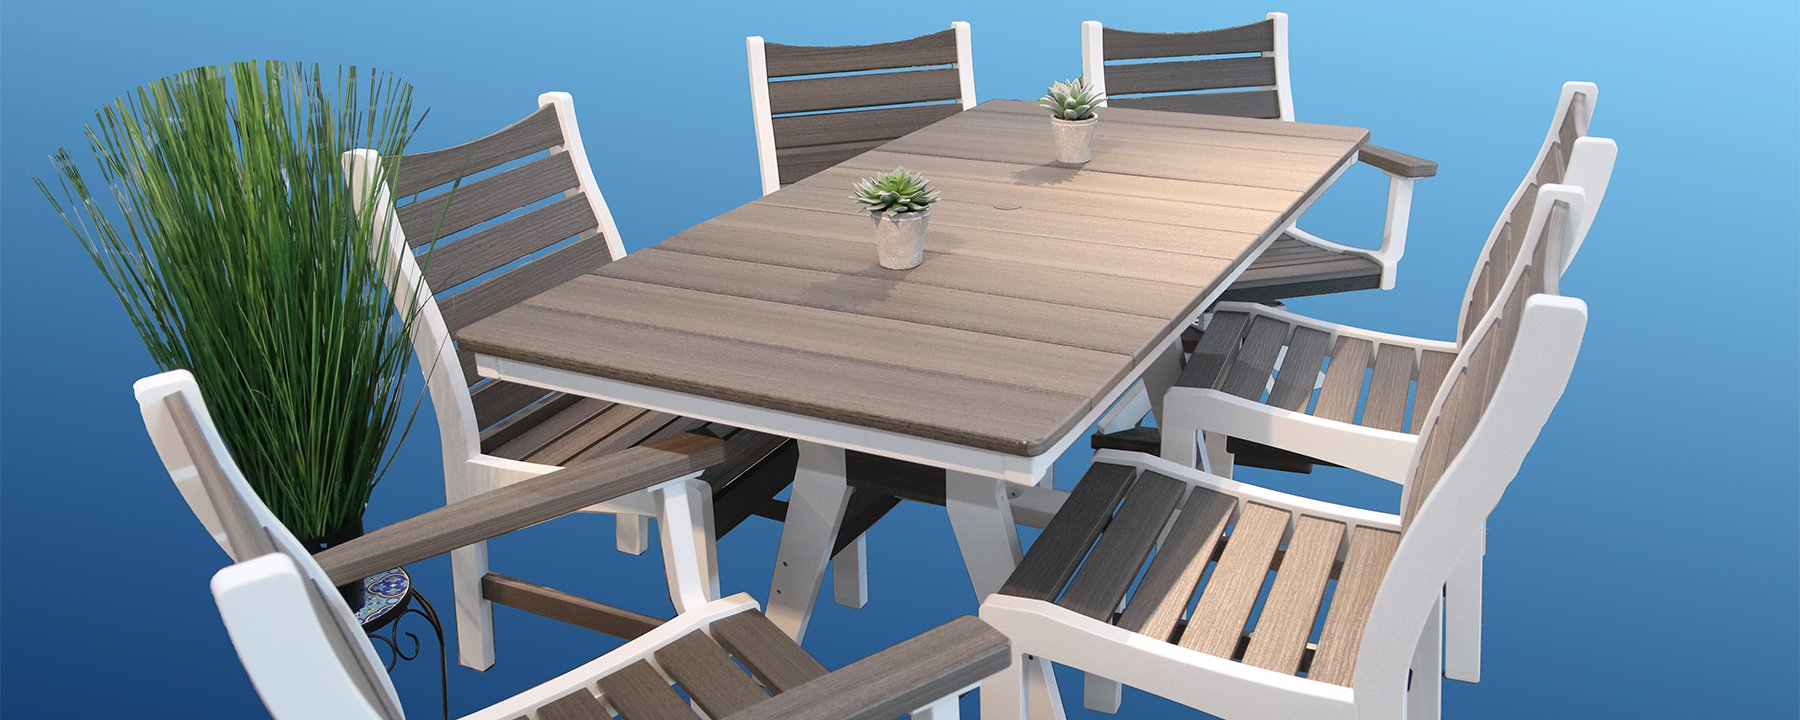 Live Outdoors with furniture from Flowerland